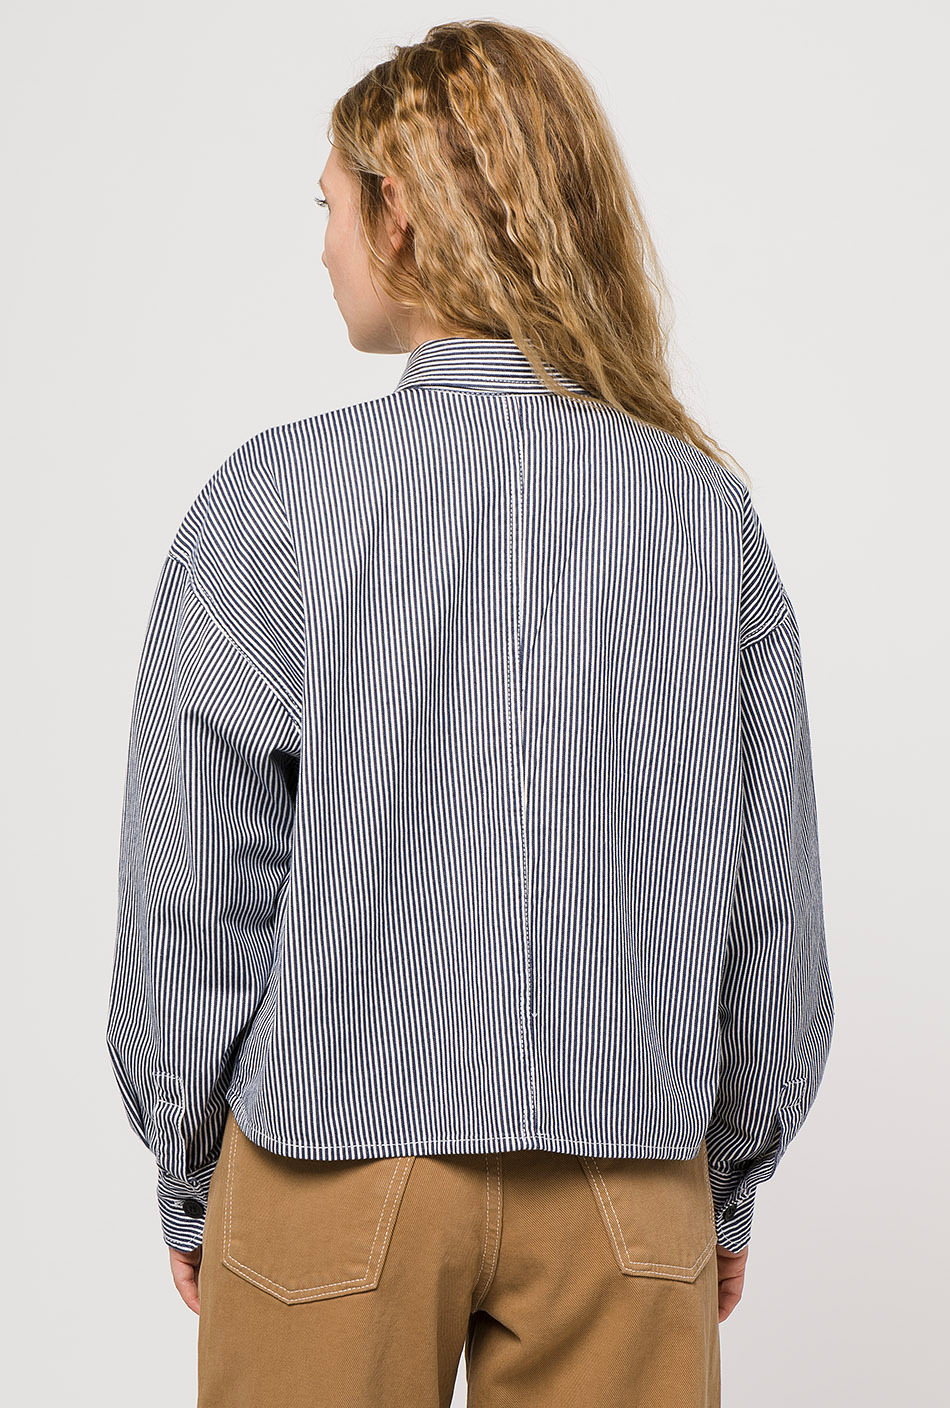 Camisa Urban Stripes